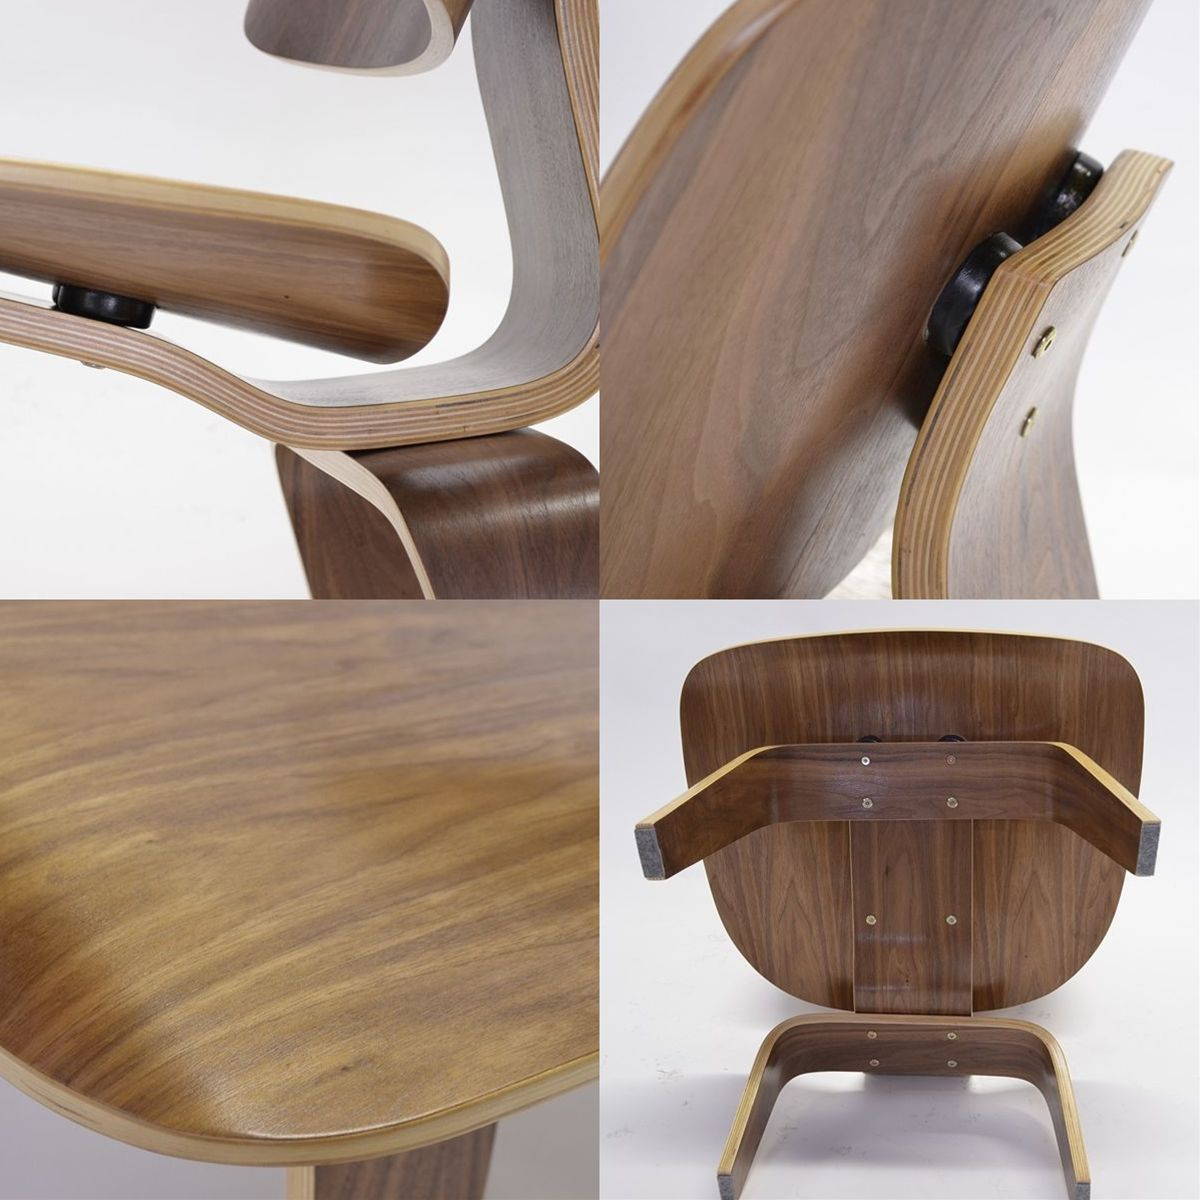 Marvelous photograph of  Rakuten Global Market: Eames LCW lounge chair Wood walnut with #432C23 color and 1200x1200 pixels